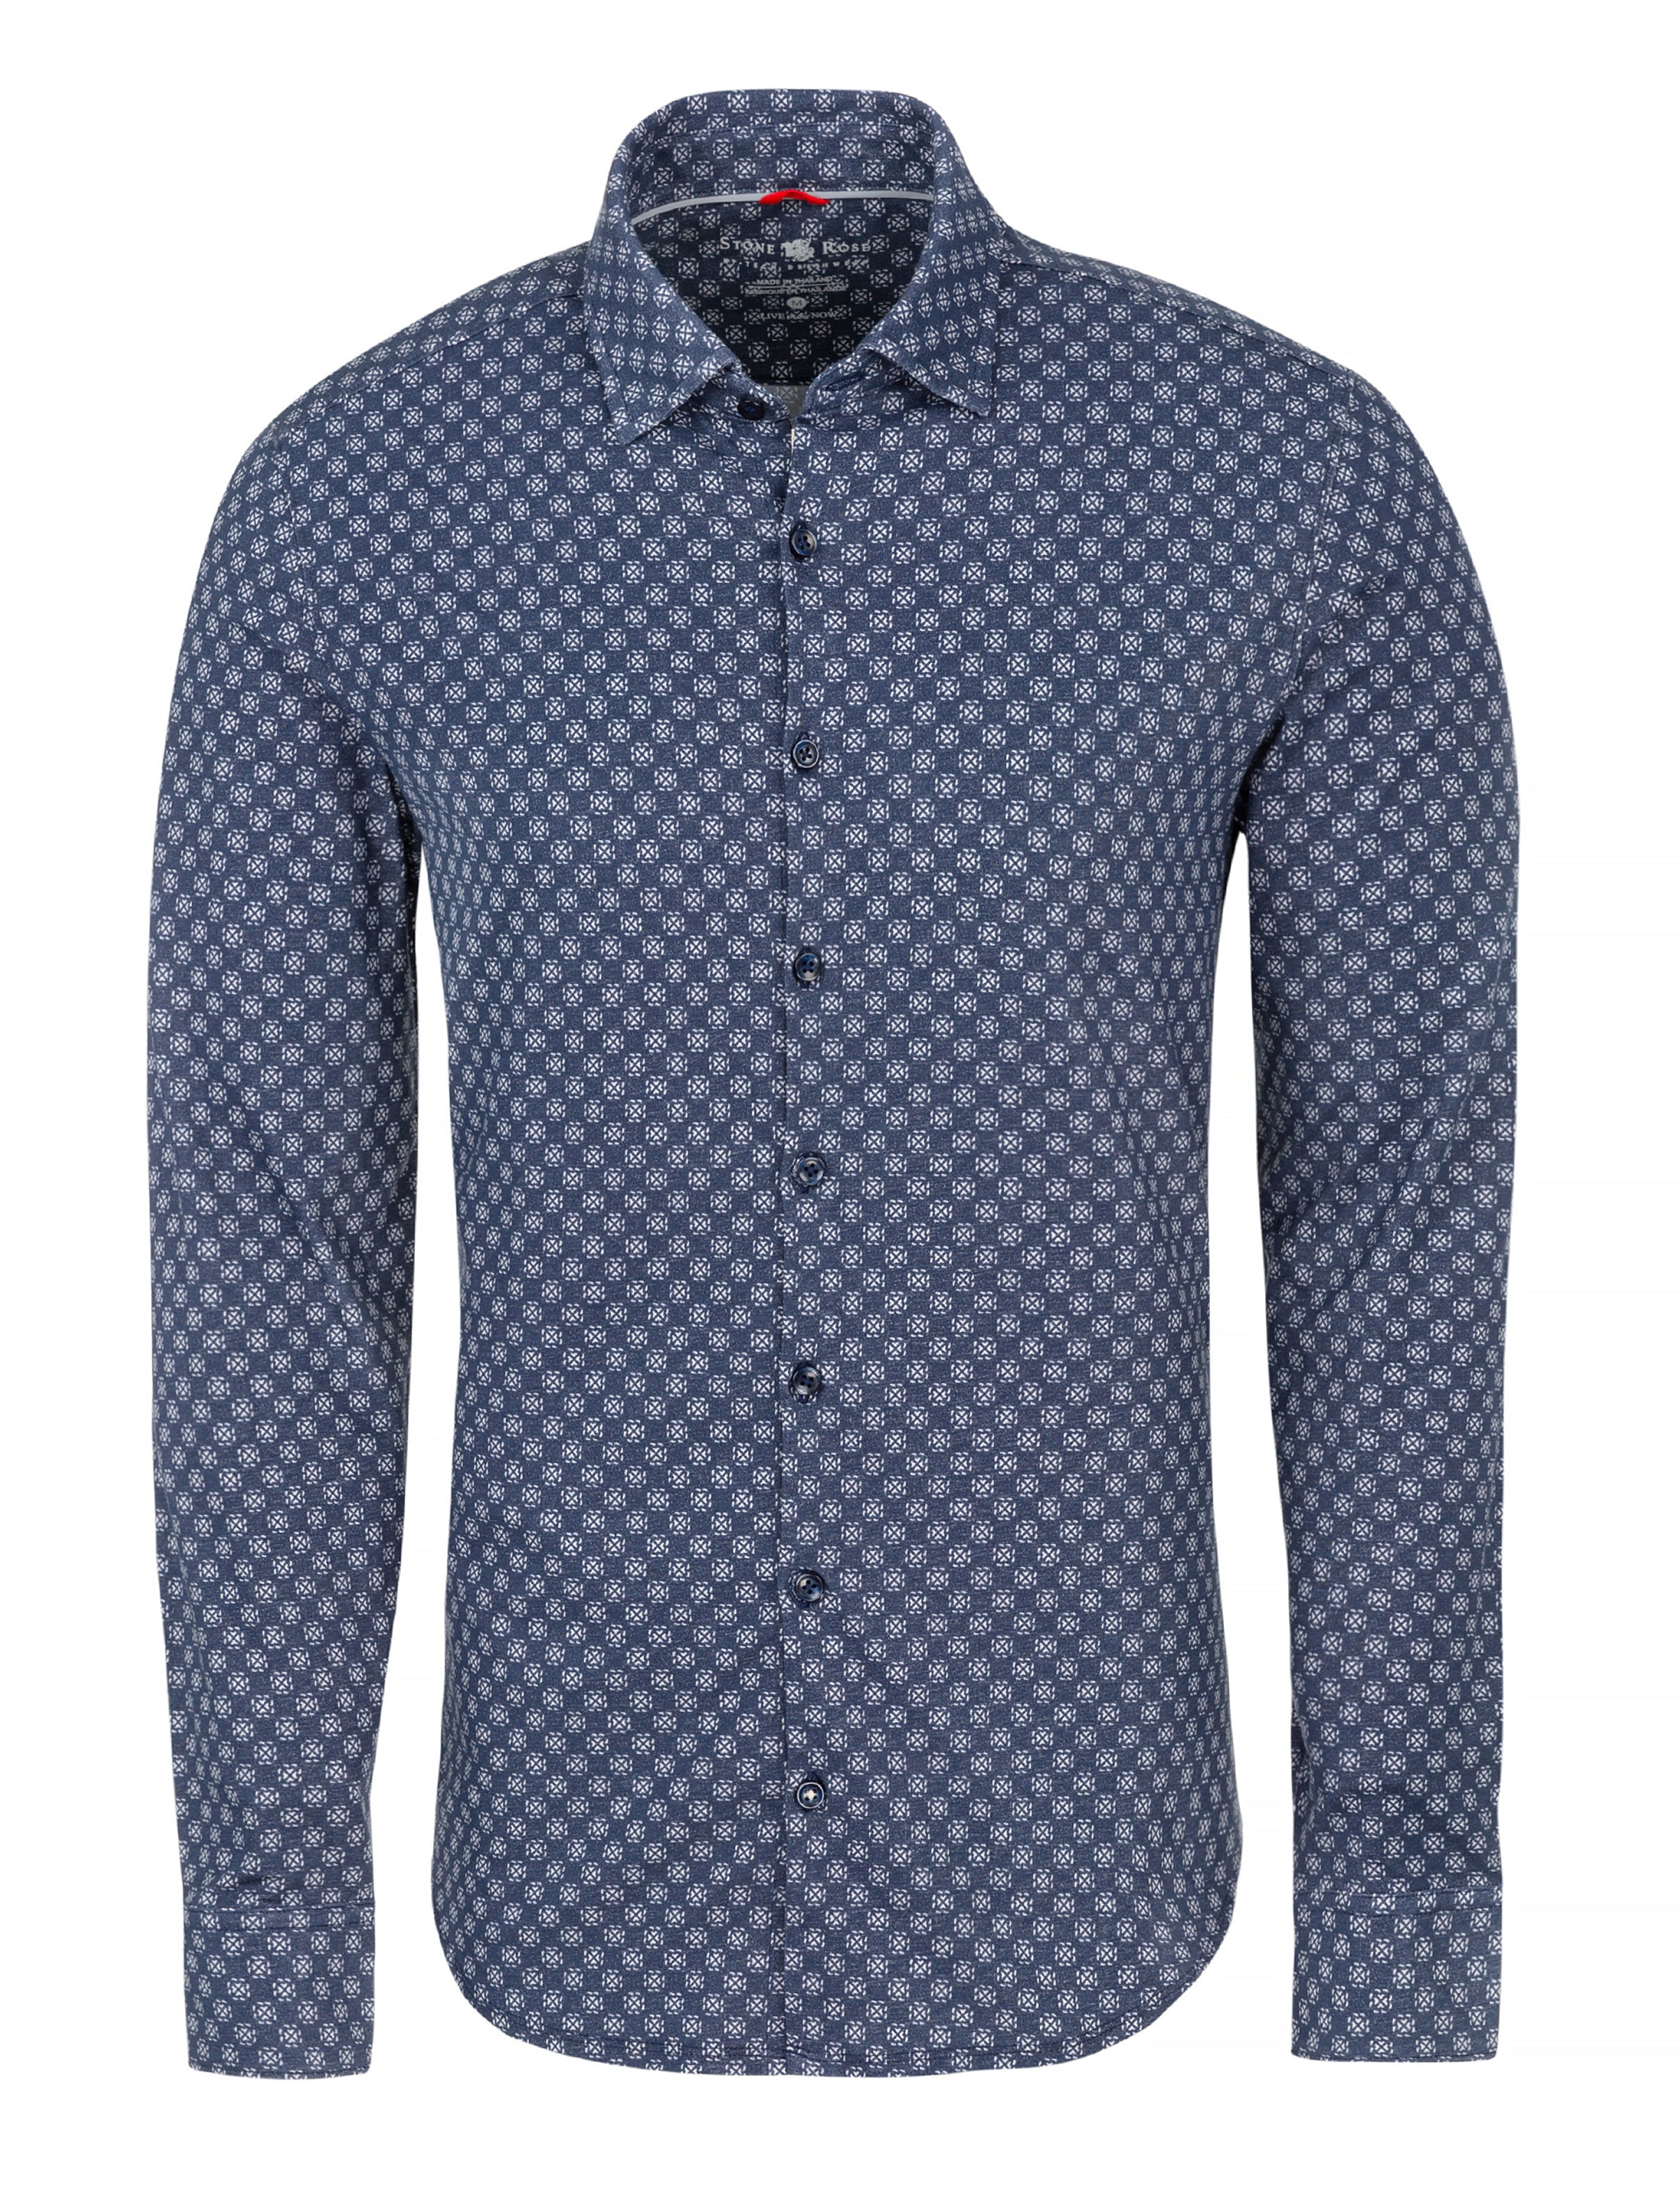 Navy Geometric Knit Performance Long Sleeve Shirt-Stone Rose